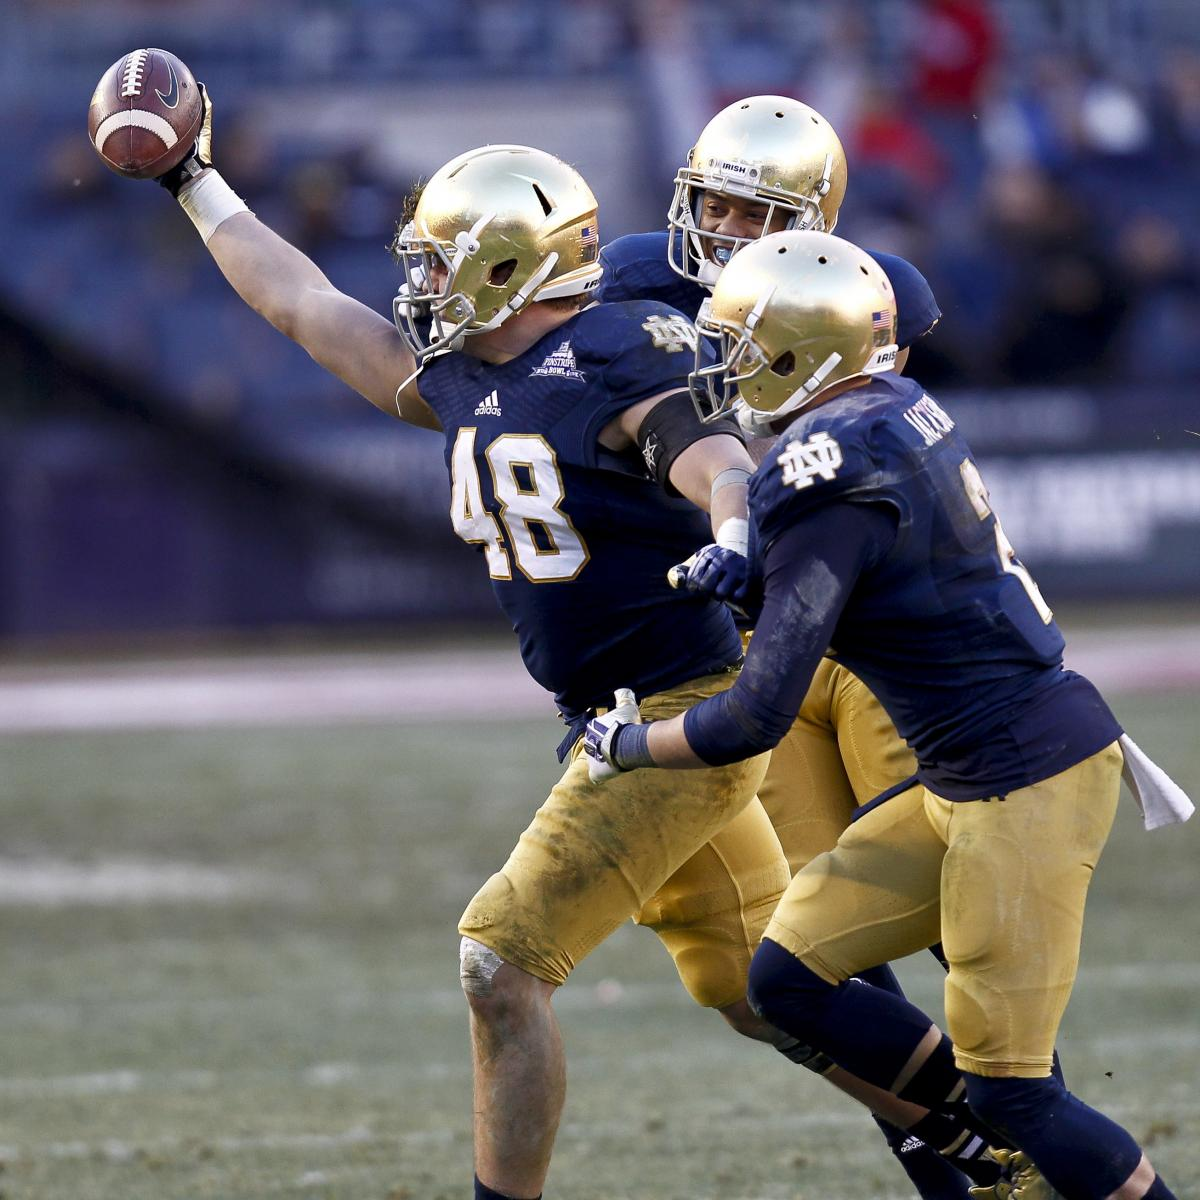 Notre Dame Will Switch to Under Armour Brand for All Apparel ... e38f294a2